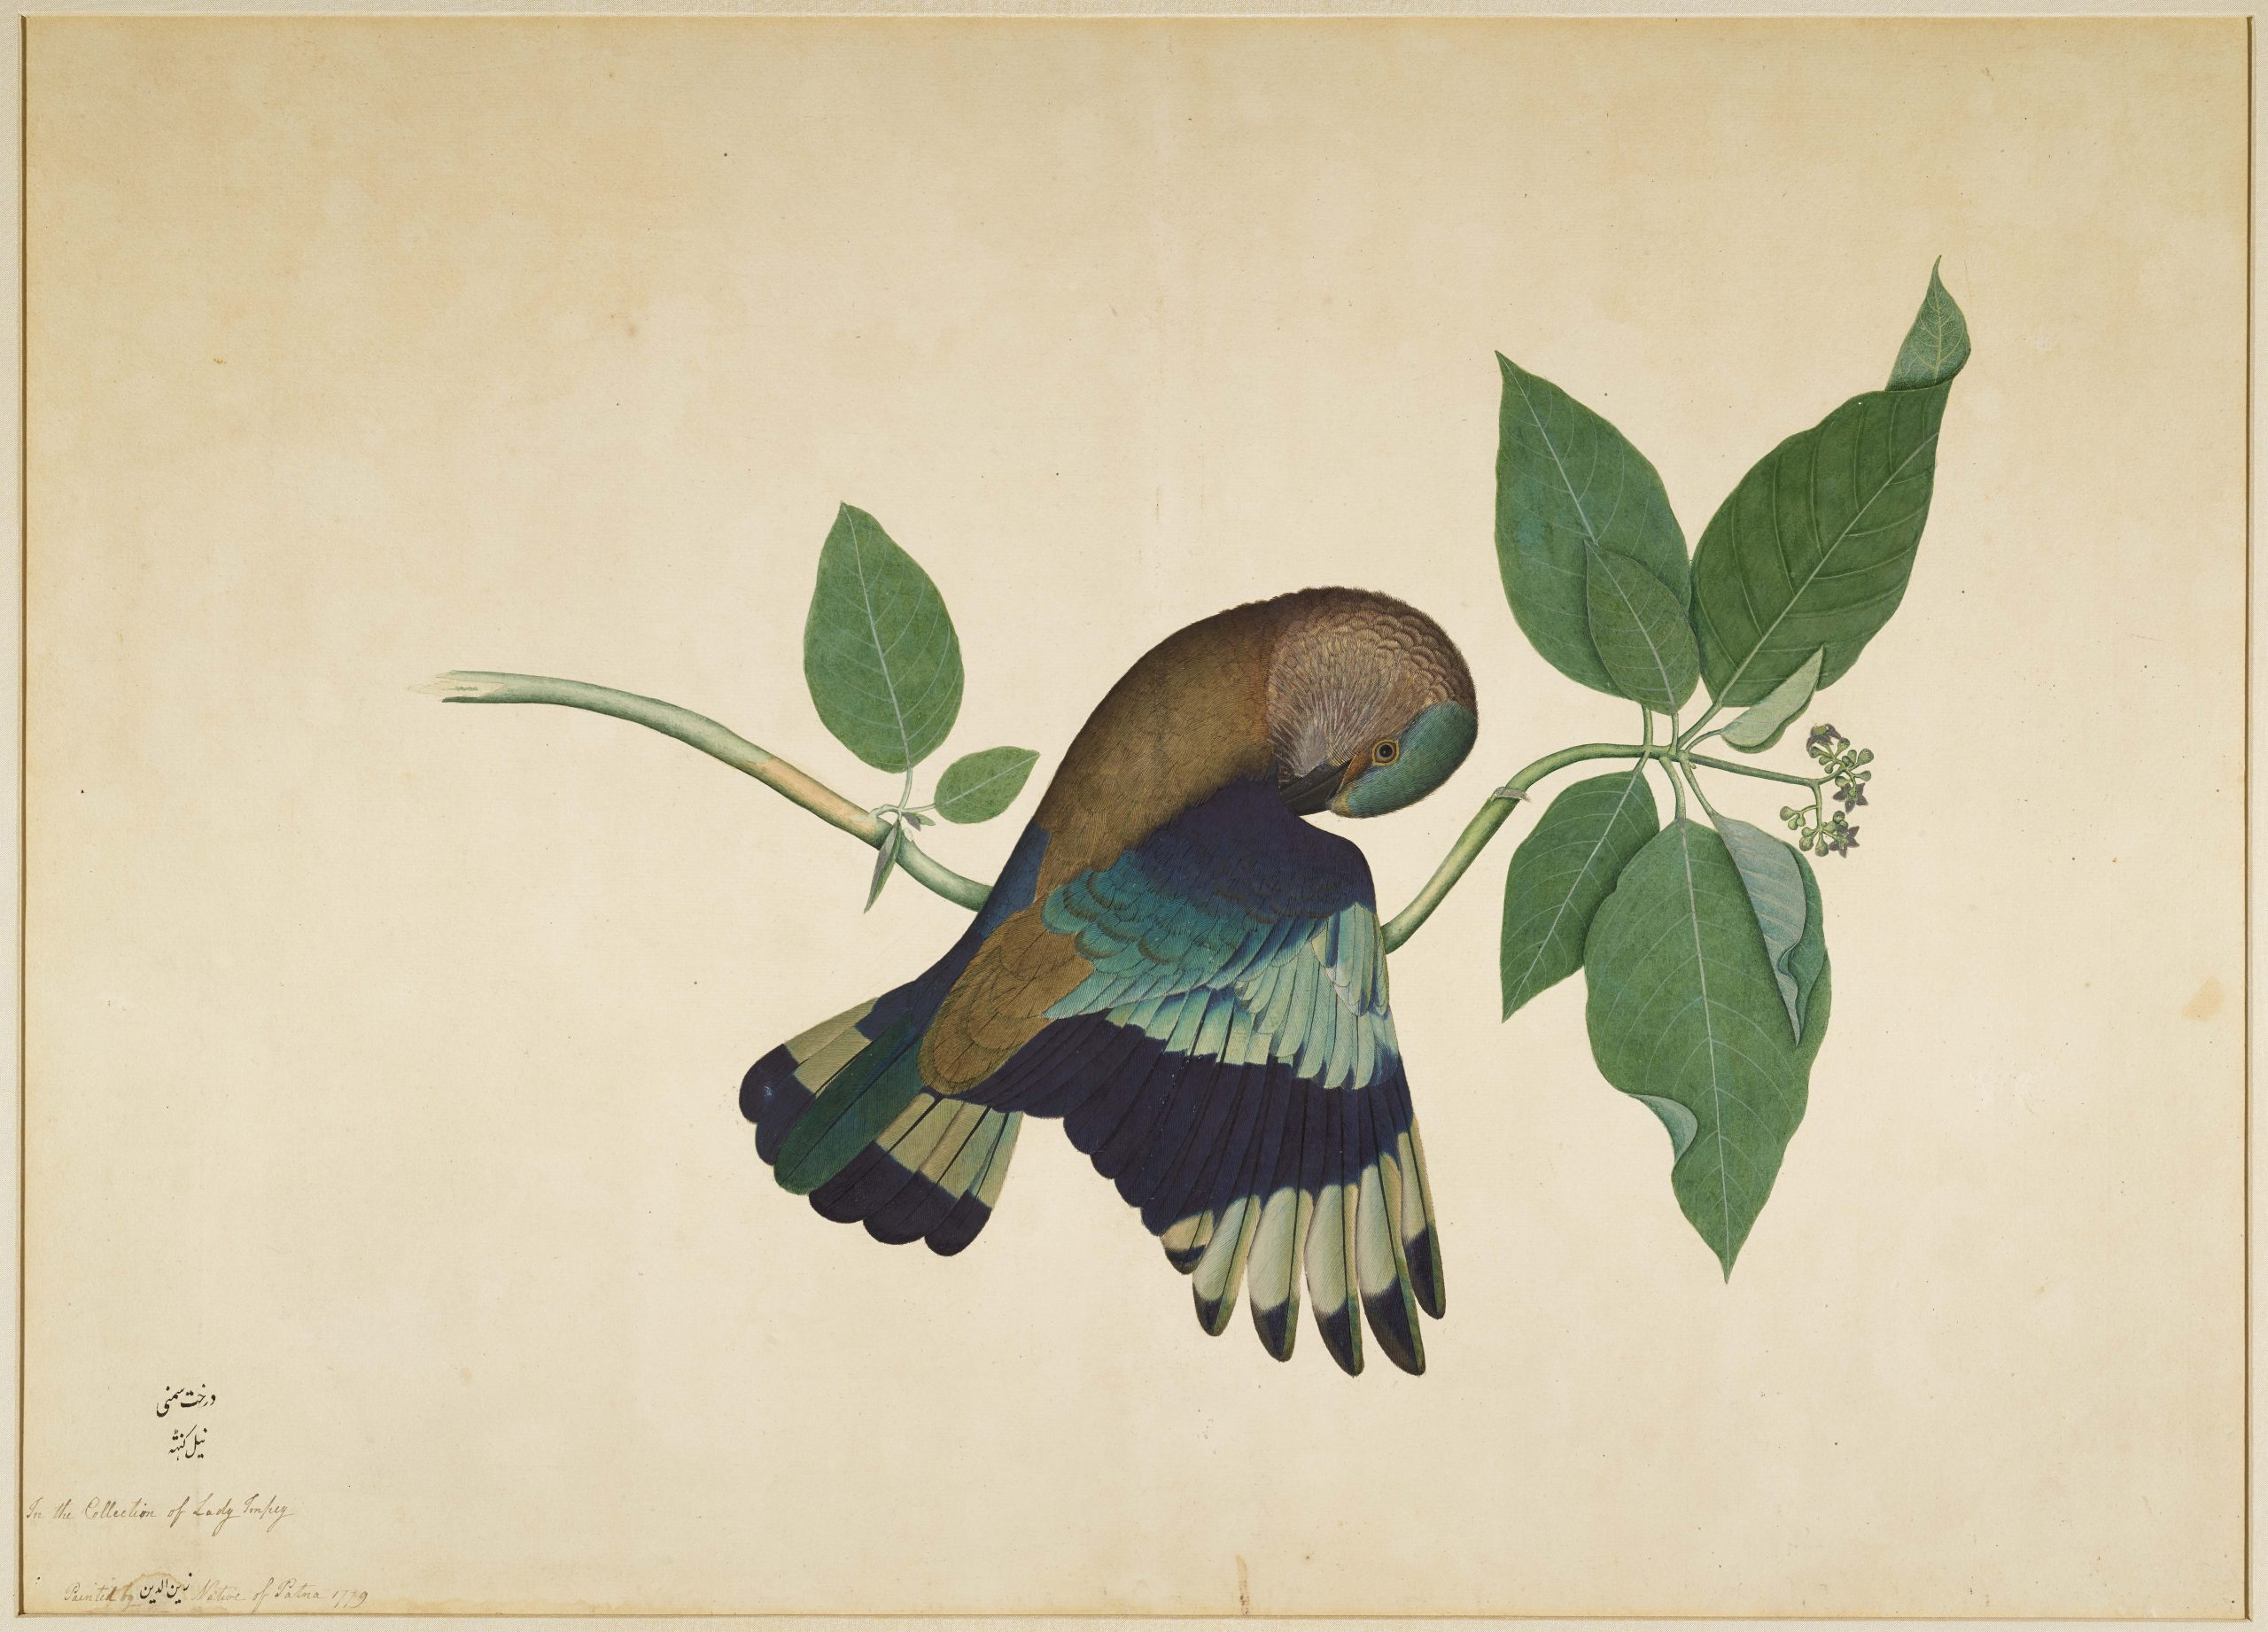 Indian Roller on Sandalwood Branch, Impey Album by Shaikh Zain ud-Din. Source: Wallace Collection